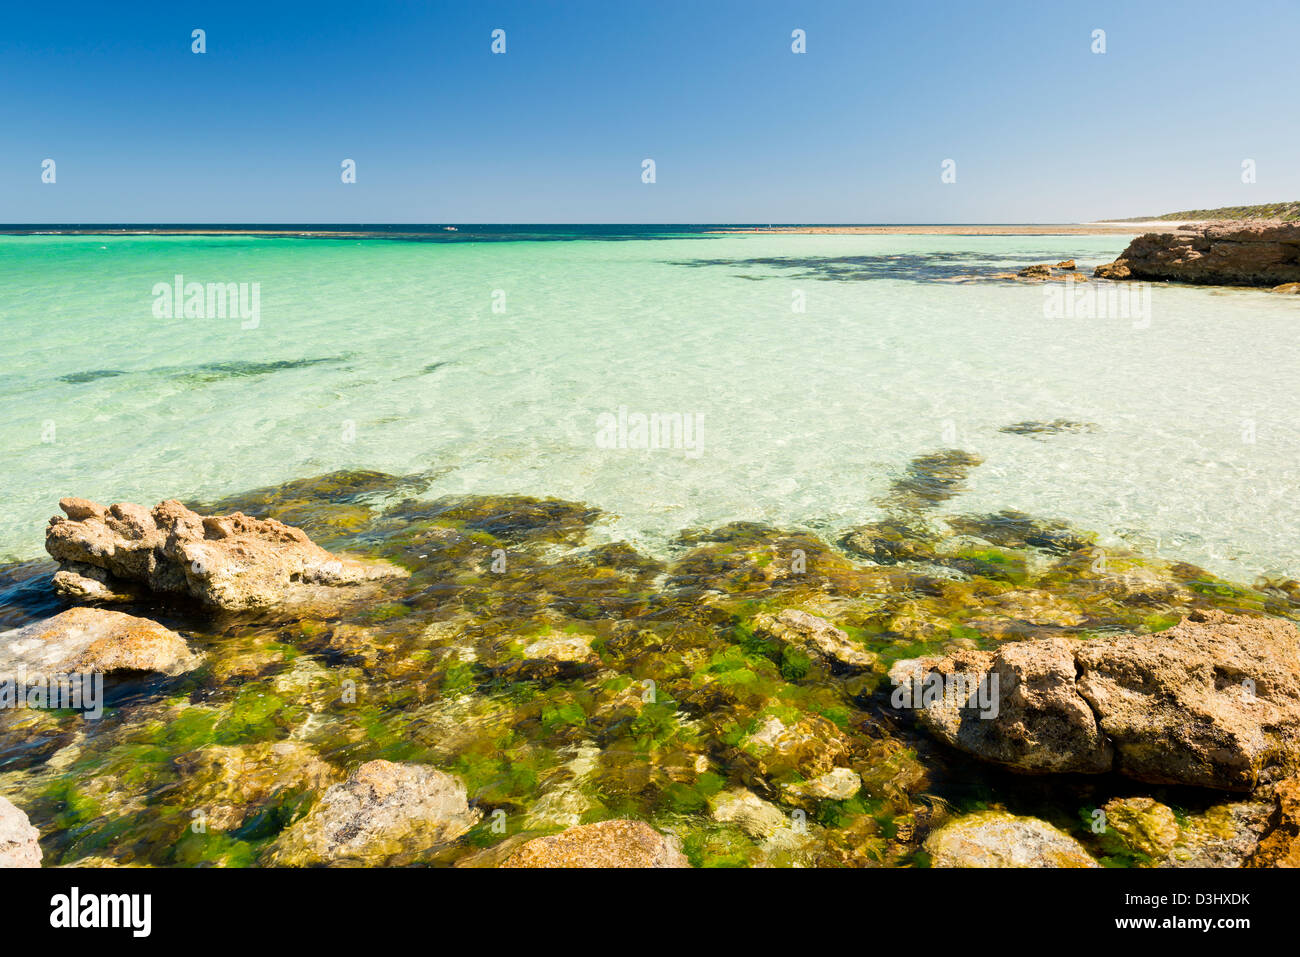 Crystal clear waters with amazing colors along the rocky coast - Stock Image